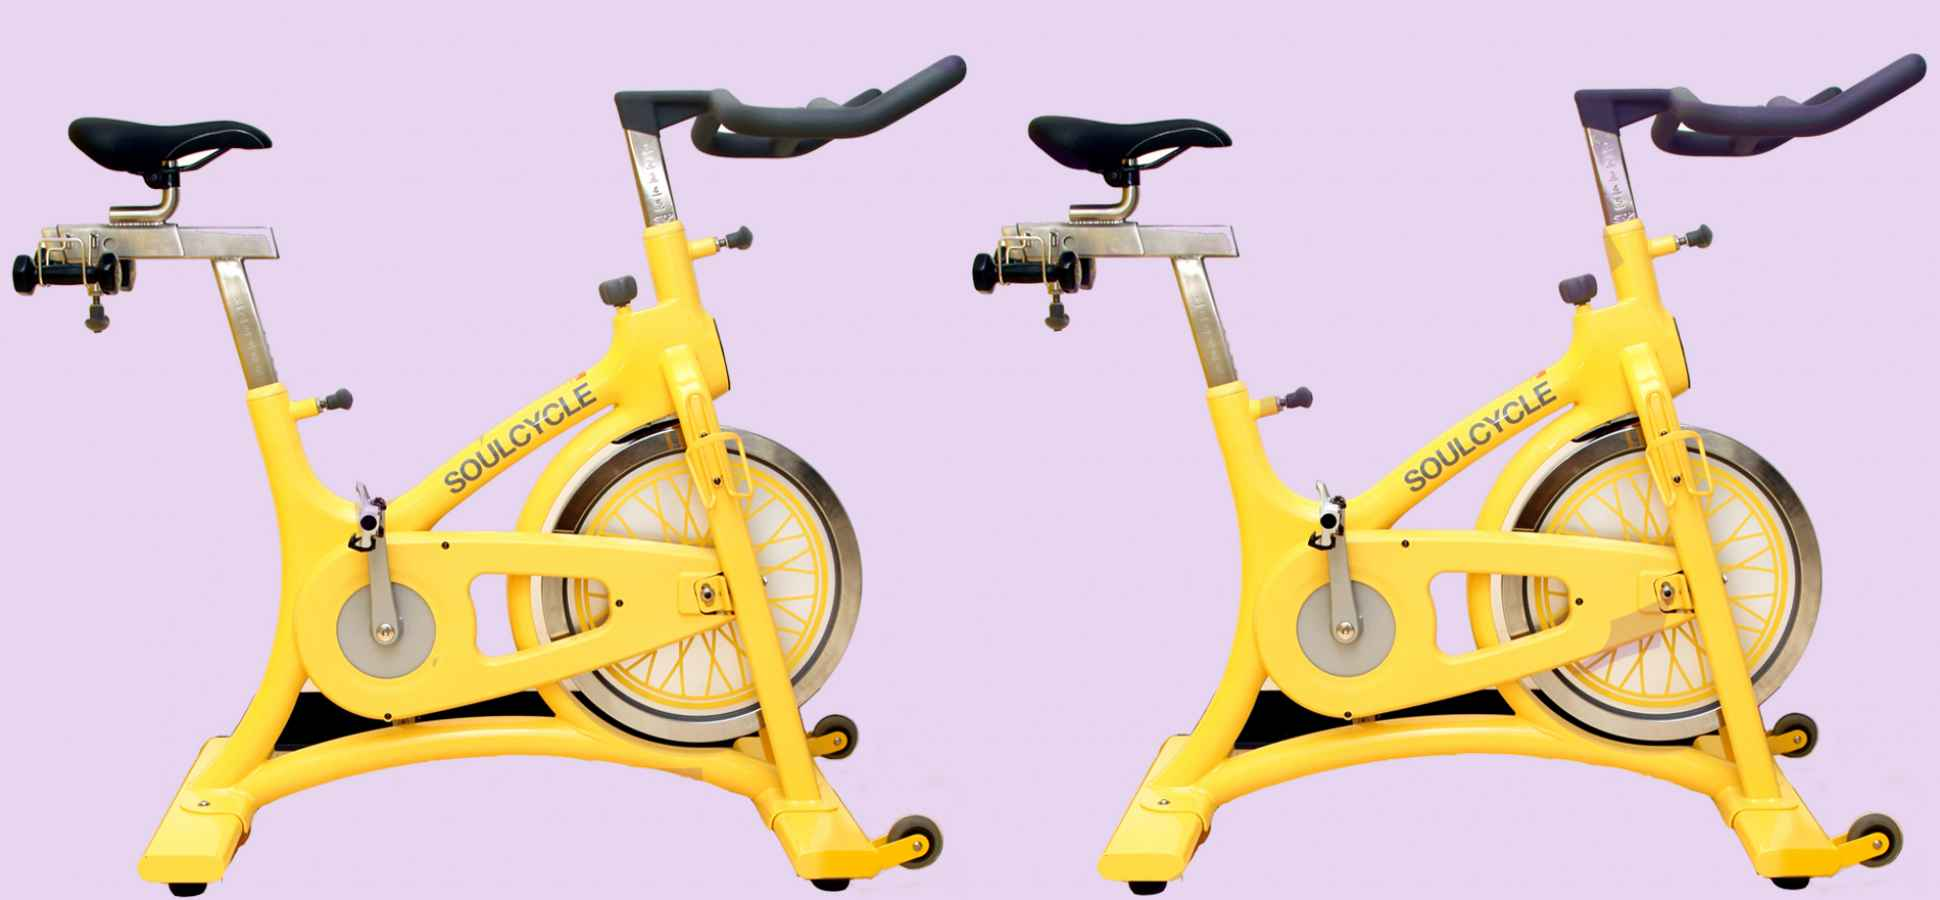 How Soulcycle Reinvented The Stationary Bike